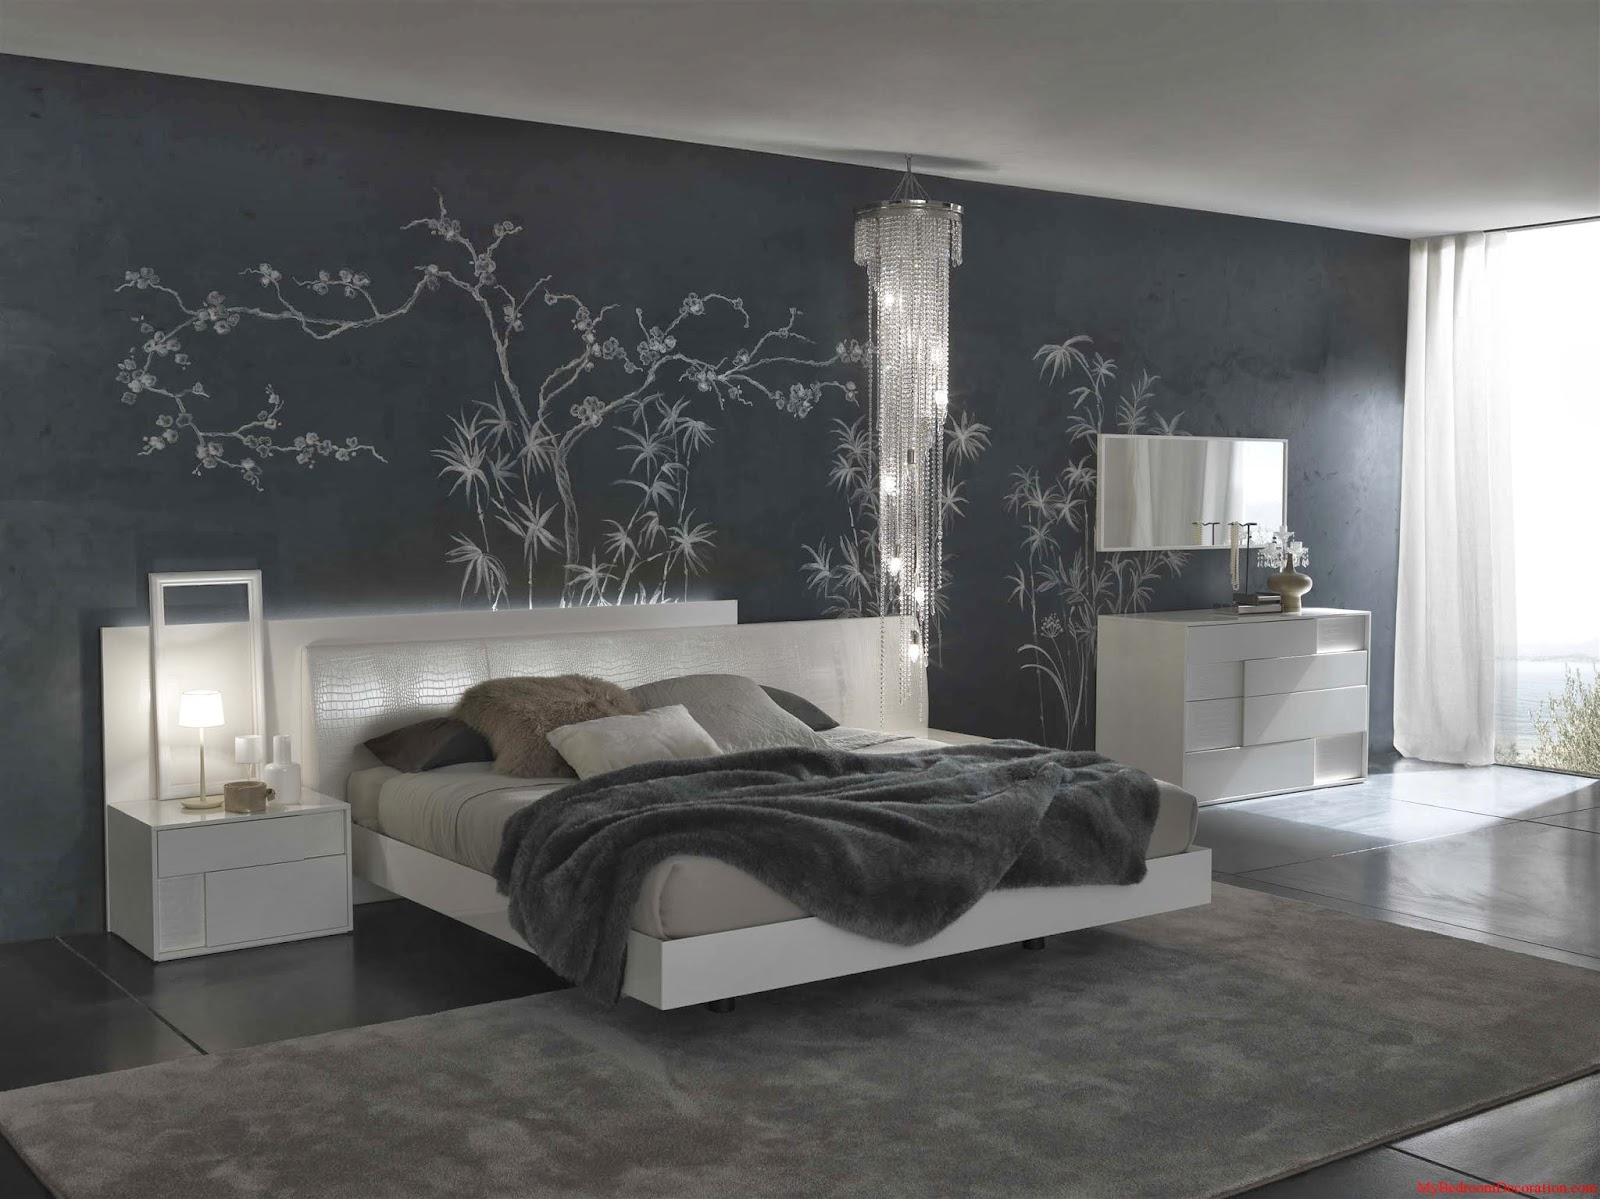 Bedroom Design For Newly Married Couple | Home Decor